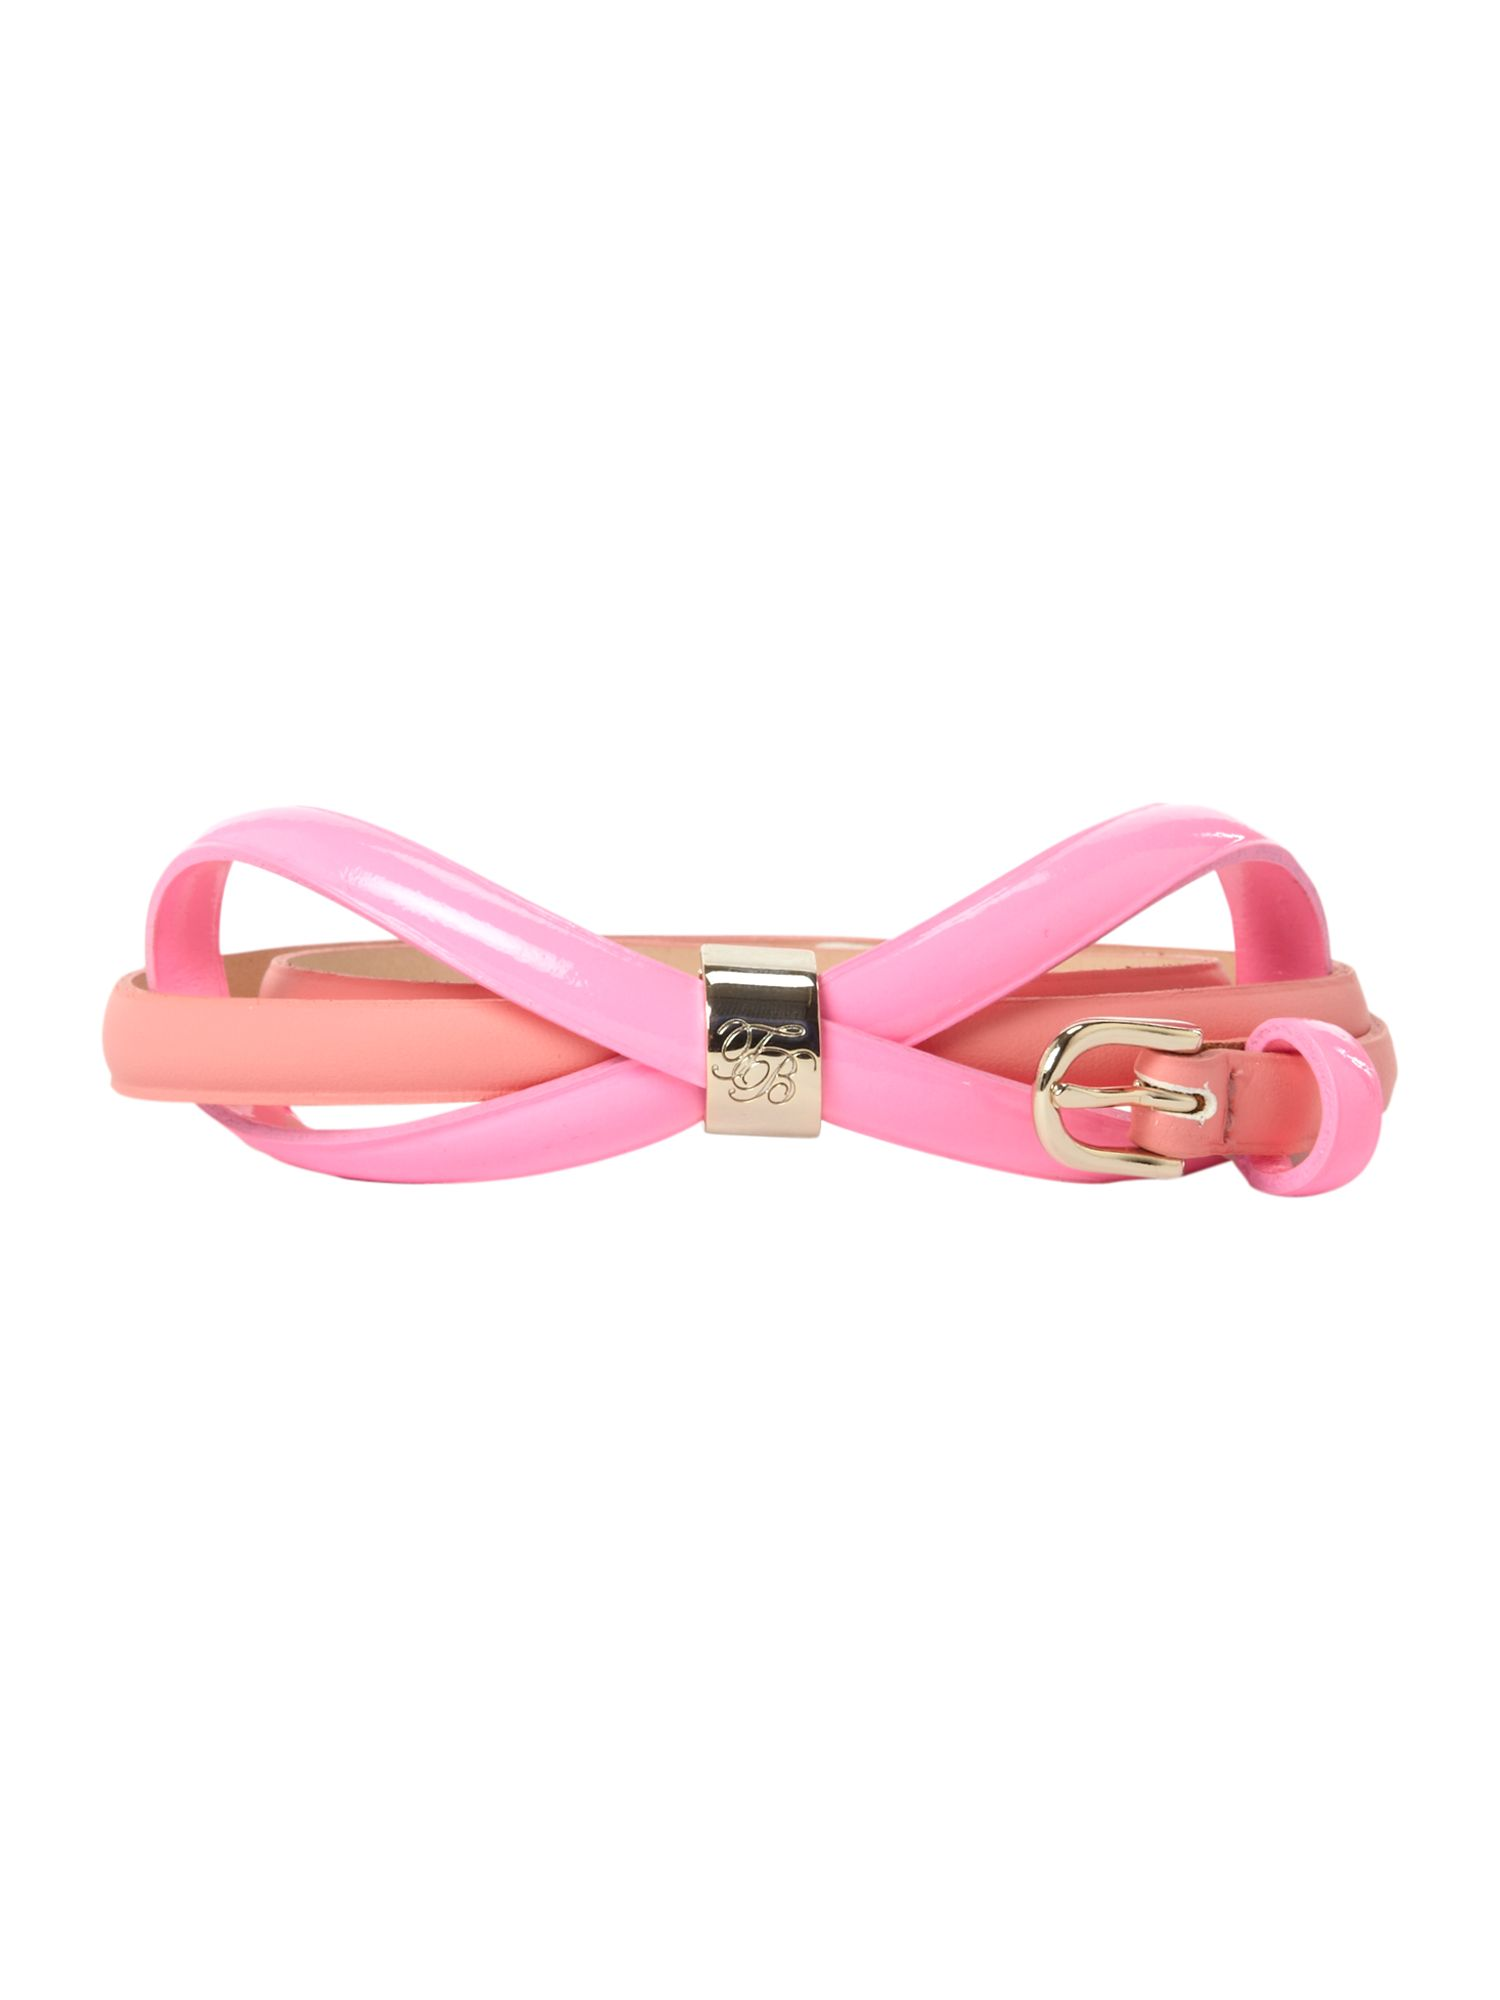 Drewry Thin Bow Waist Belt